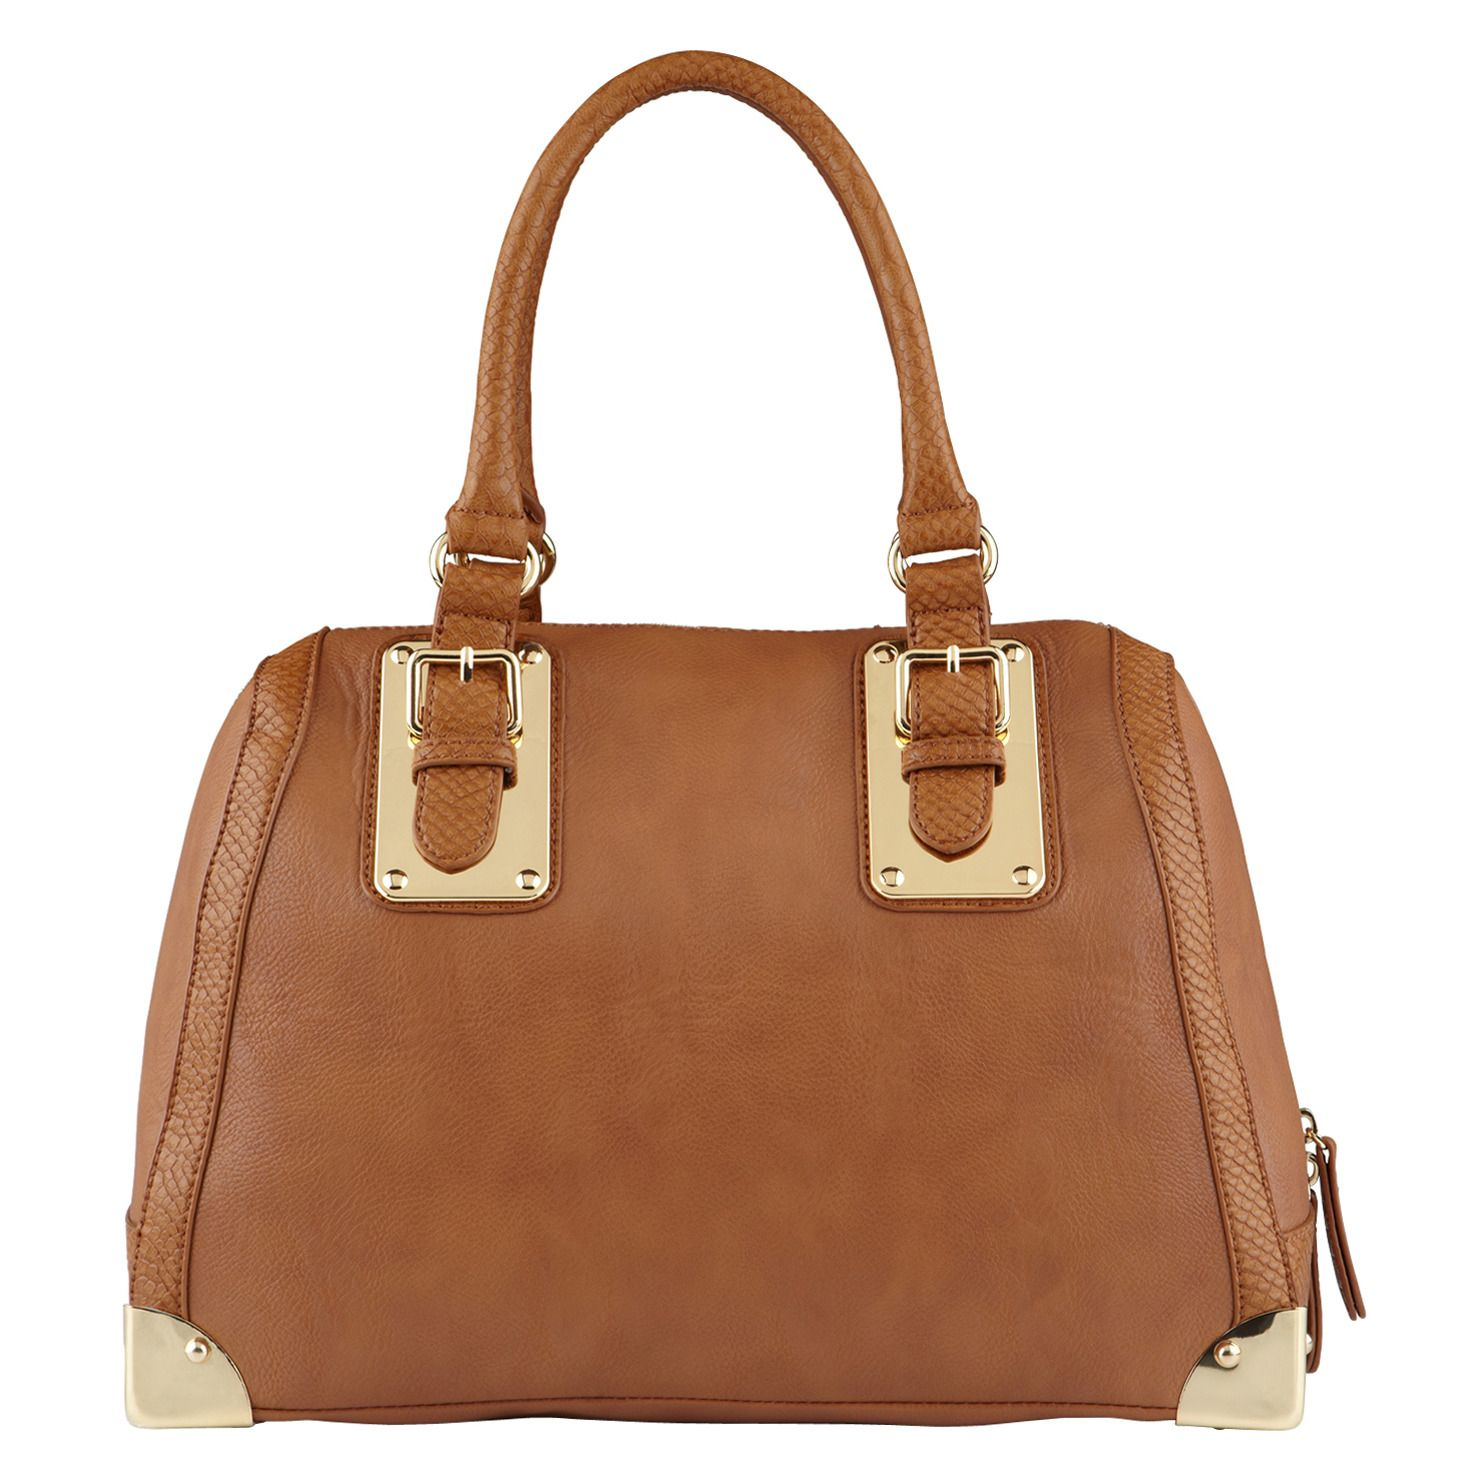 b6991c6a3ff MIGLIARINO - handbags's satchels & handheld bags for sale at ALDO Shoes.